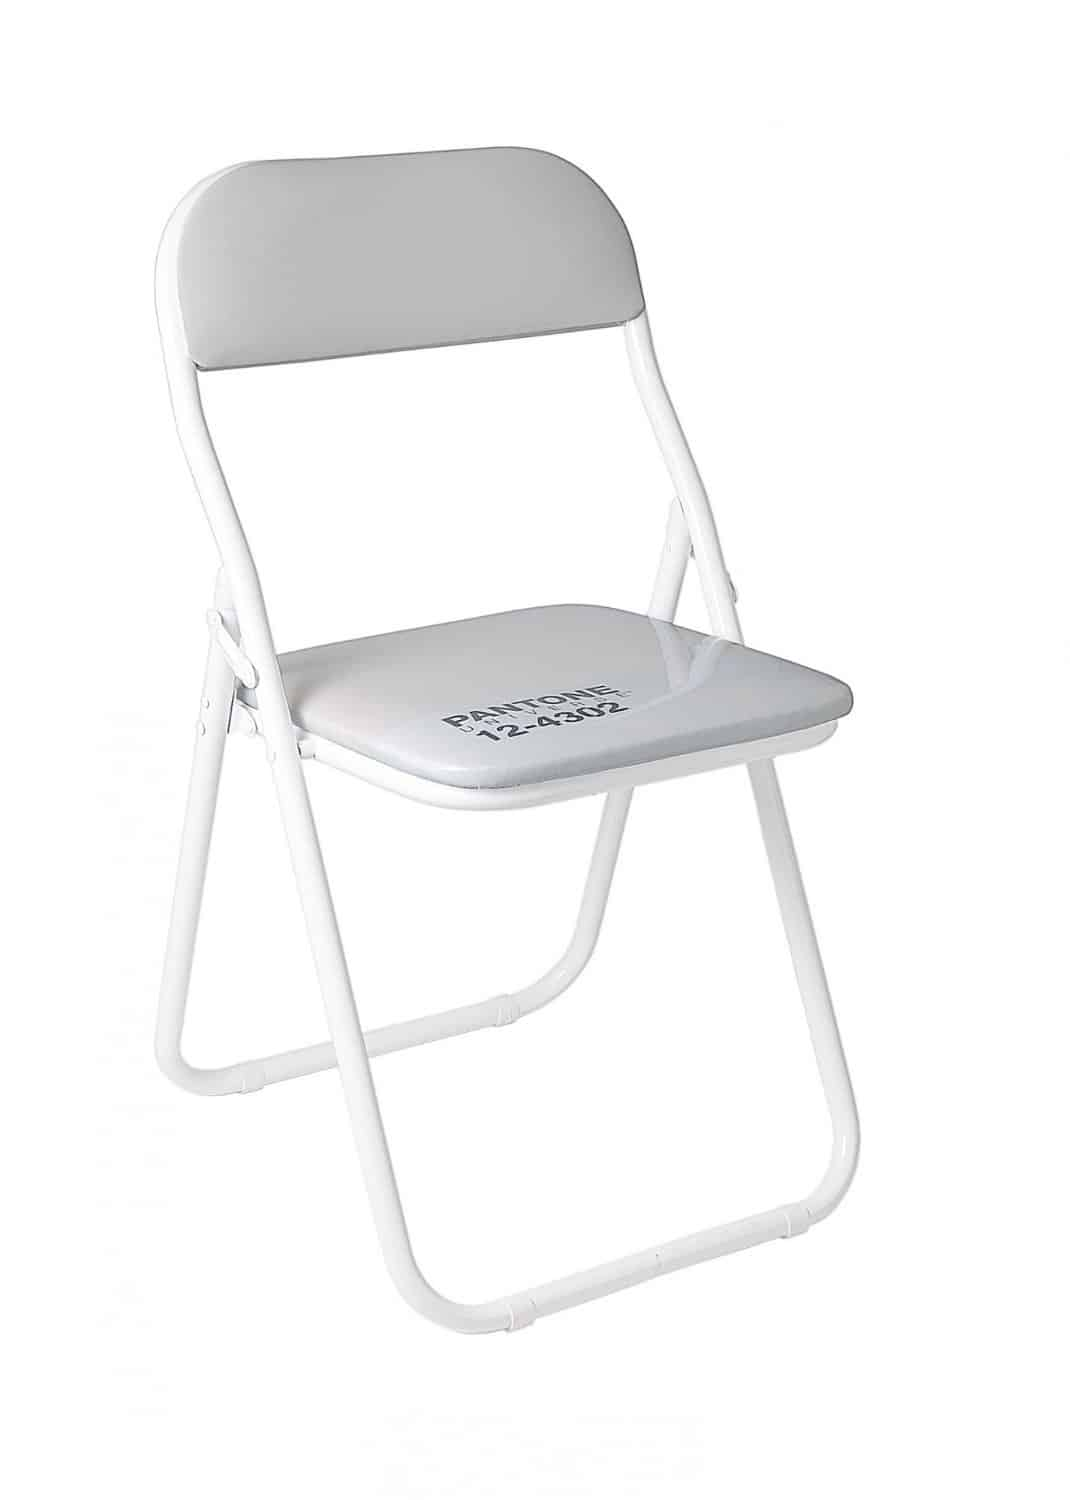 Seletti Pantone Chair White